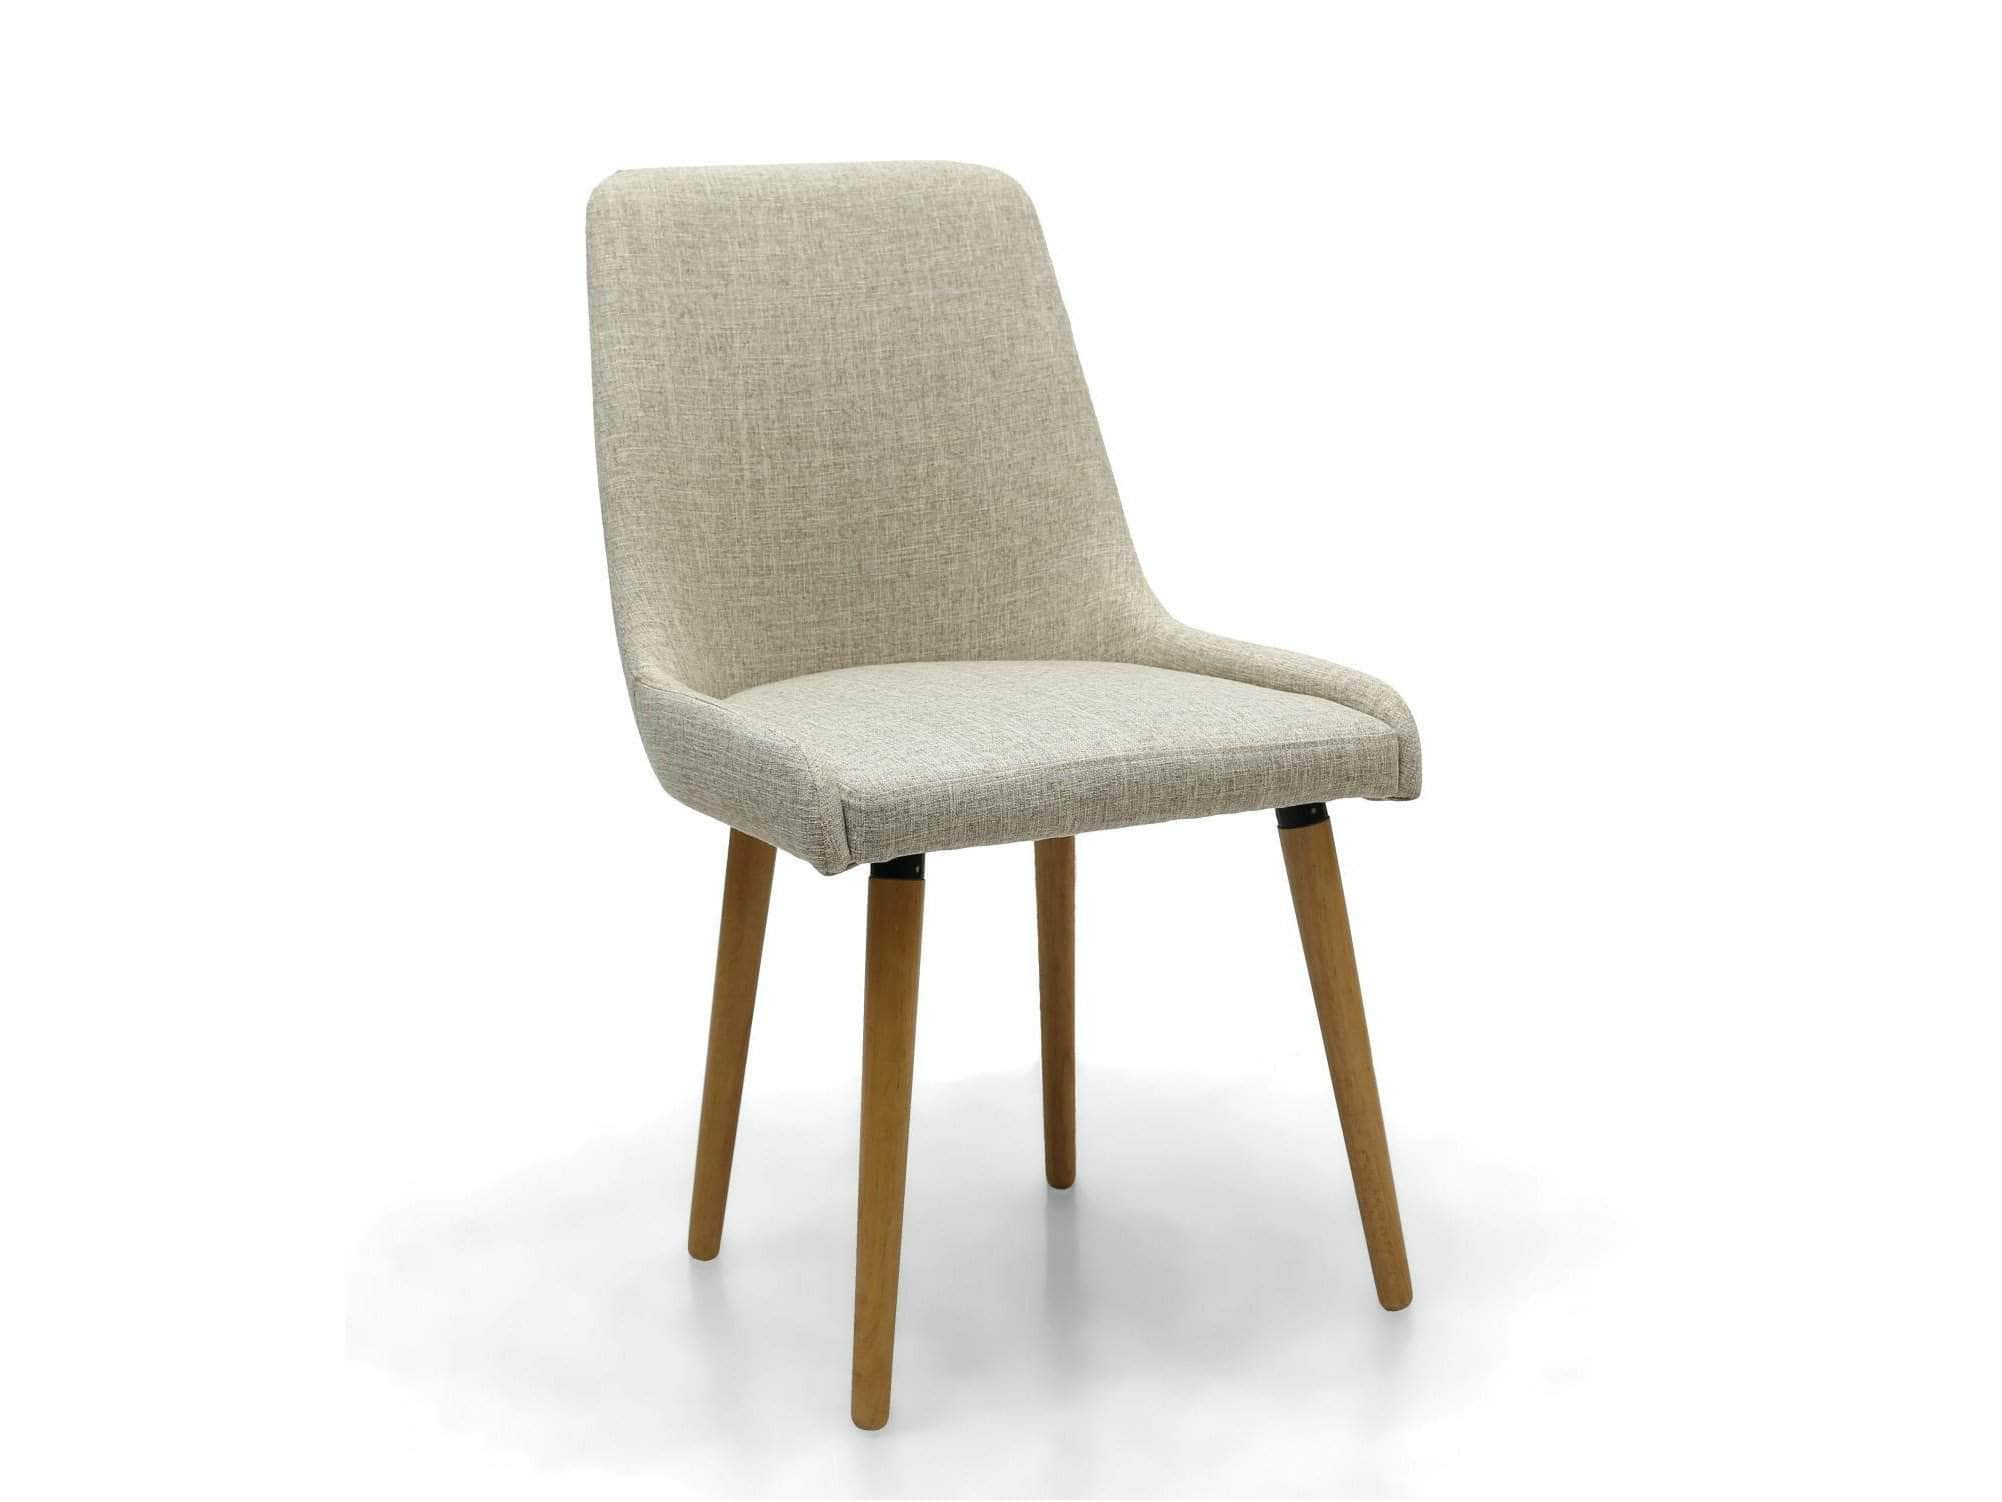 Scandi Linen Dining Chairs | Unni & Evans